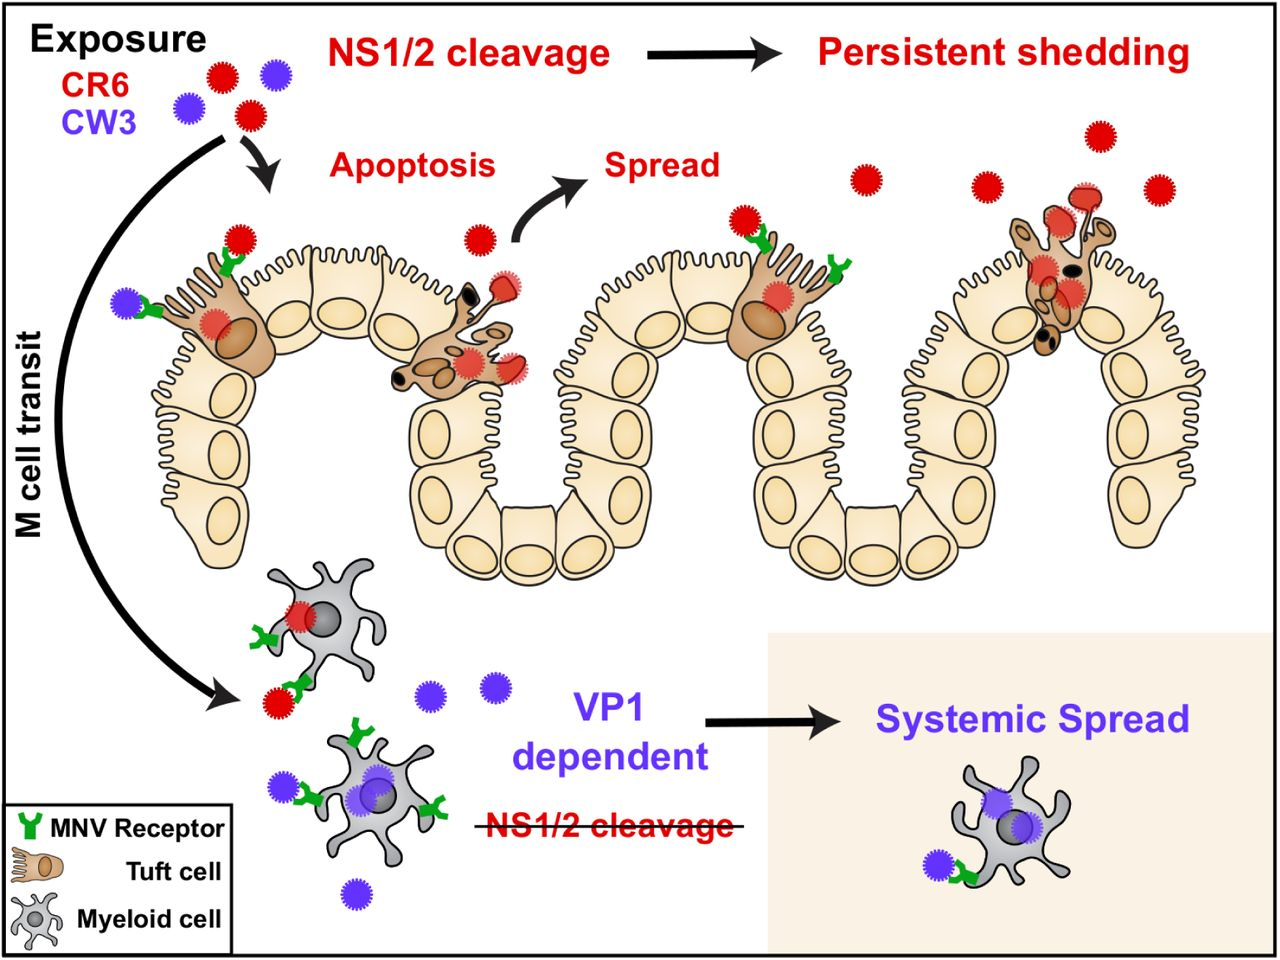 Caspase-mediated cleavage of murine norovirus NS1/2 potentiates